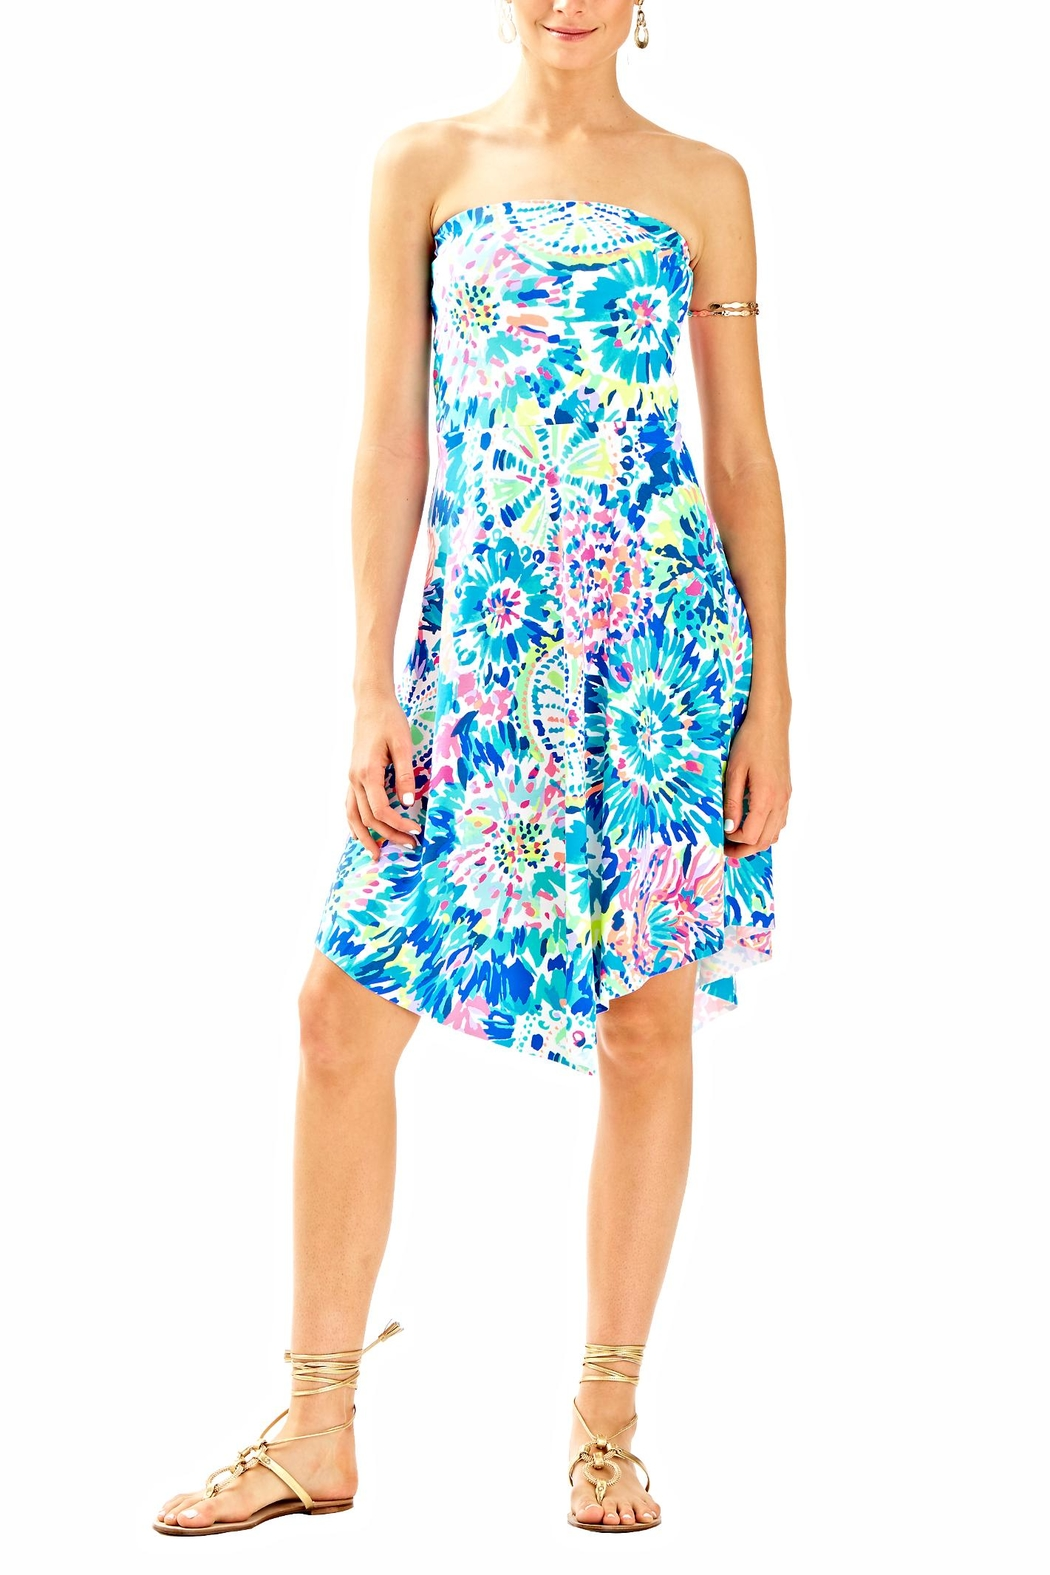 Lilly Pulitzer Loleta Strapless Dress from Sandestin Golf and ...